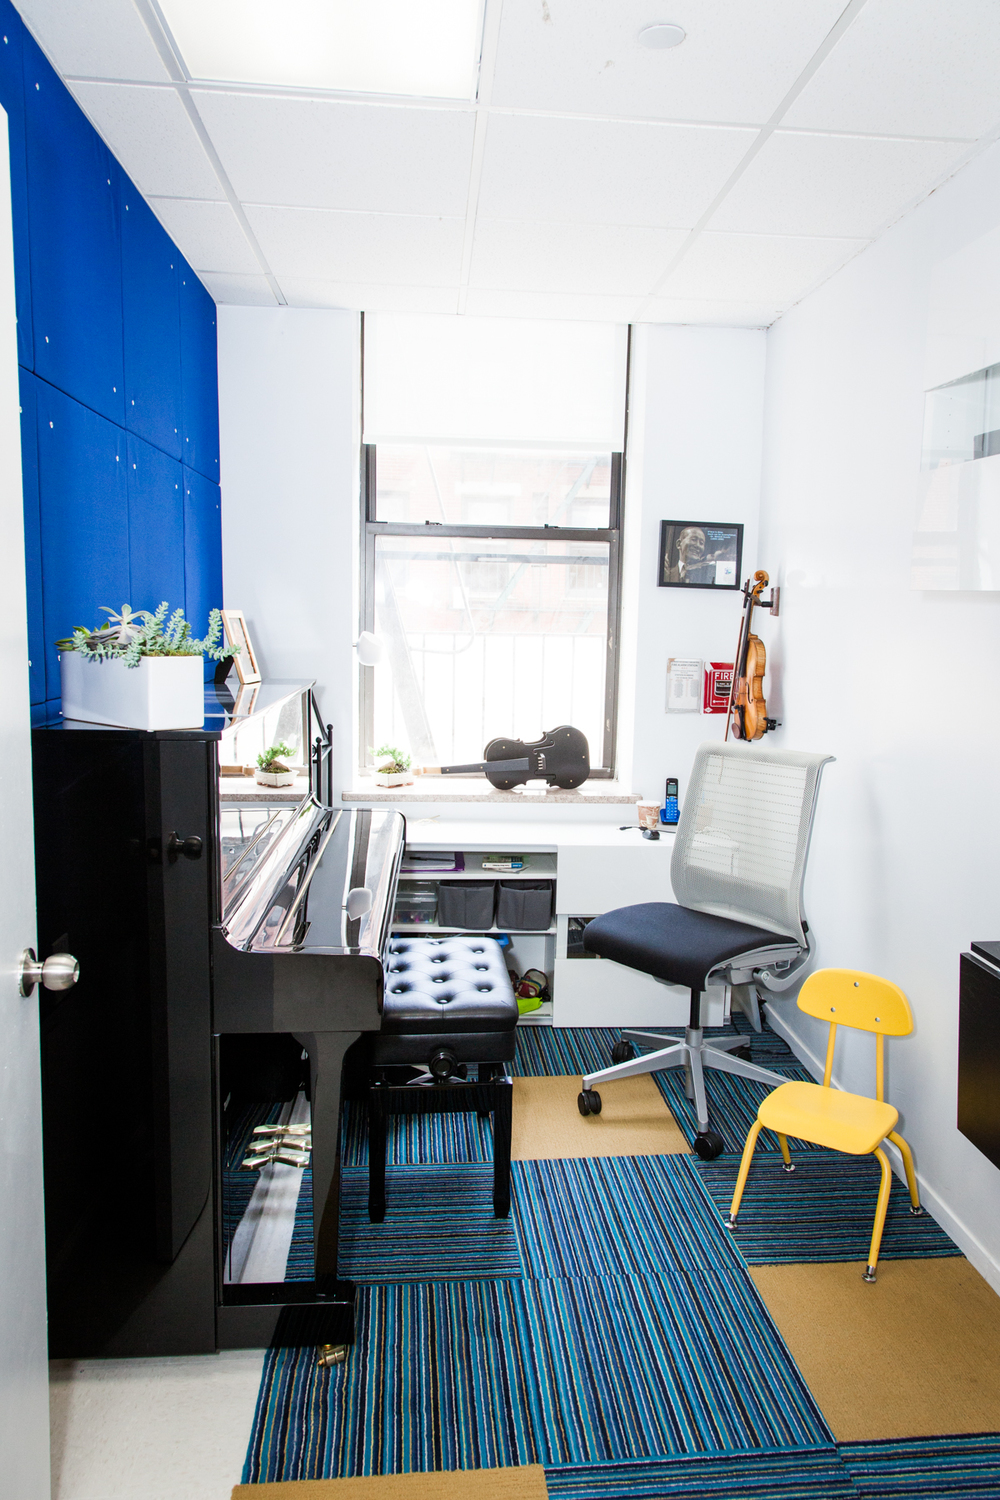 tone-academy-of-music-nyc-suzuki-practice-room.jpg